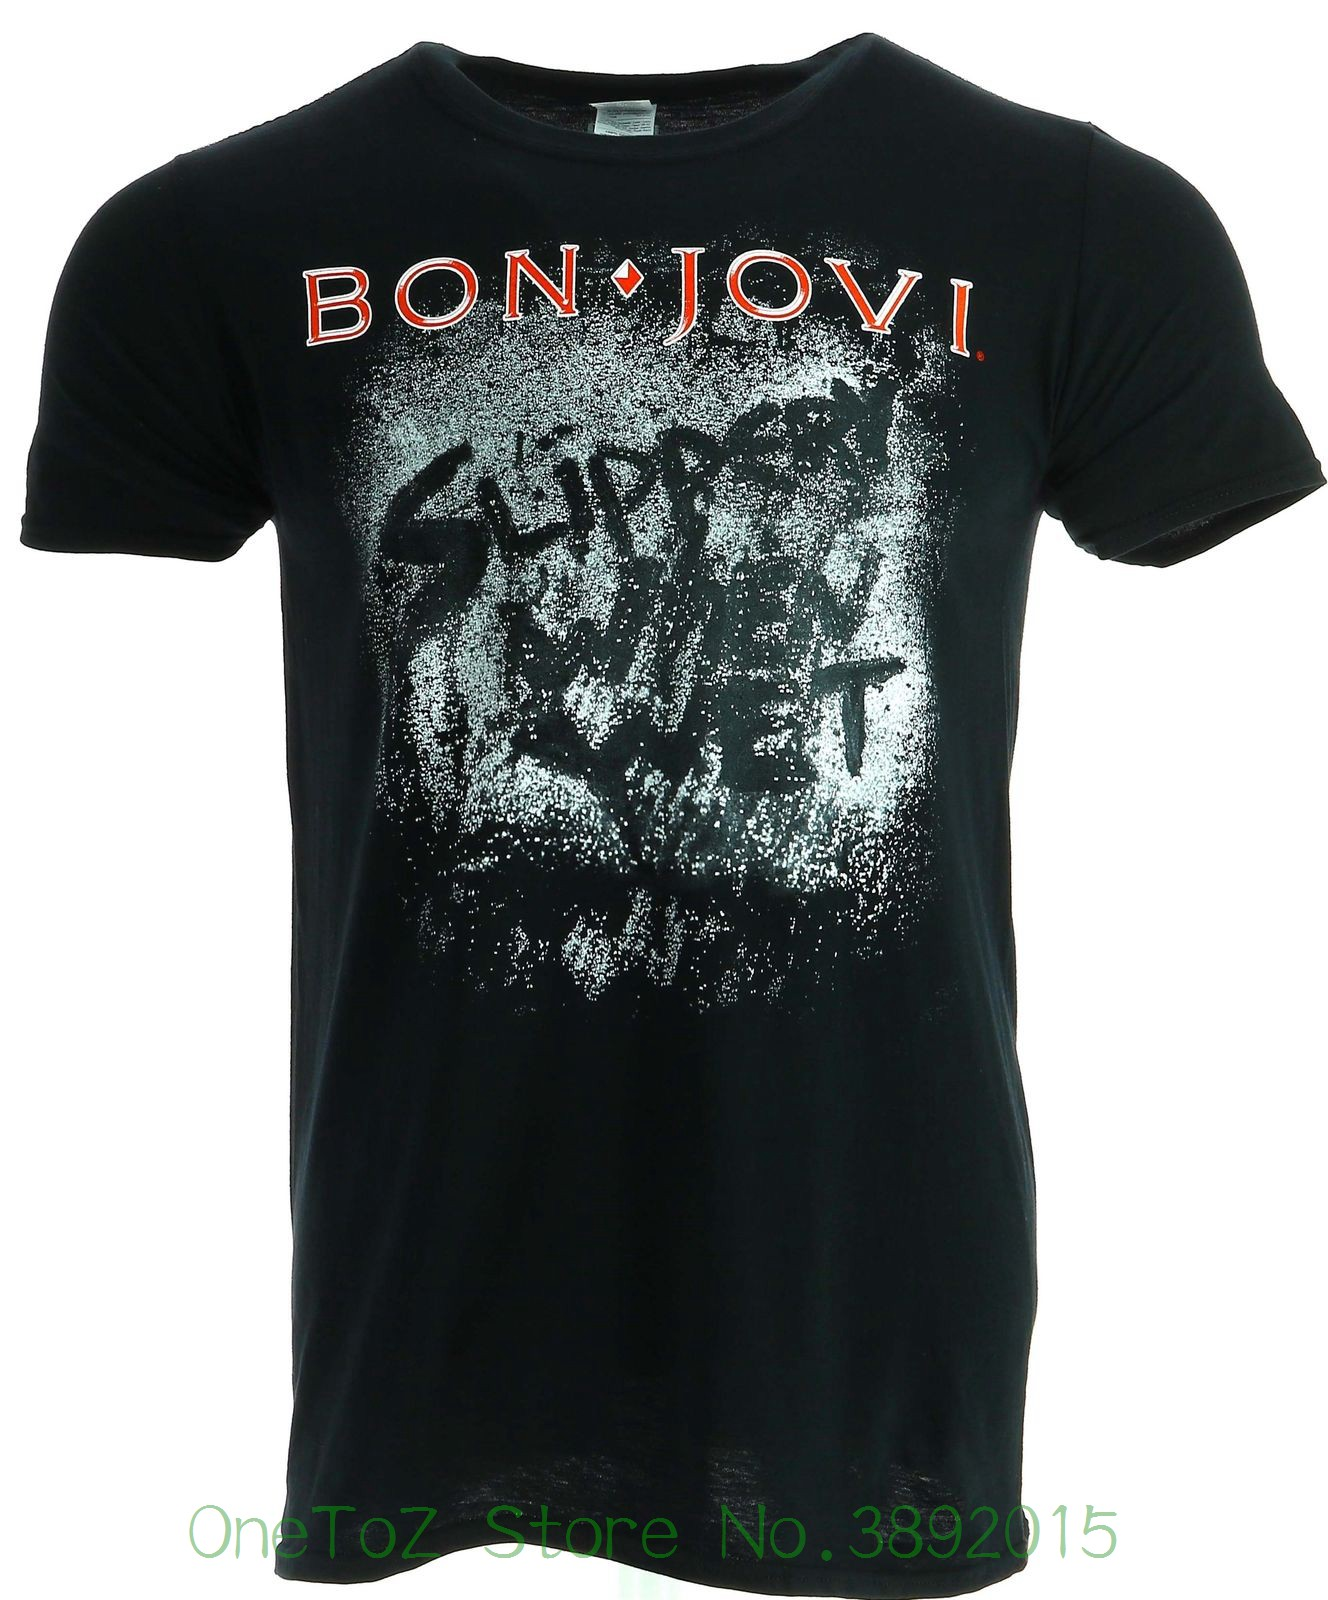 2018 Summer T-shirts For Men Bon Jovi Slippery When Wet Album Black T-shirt Official Licensed Music